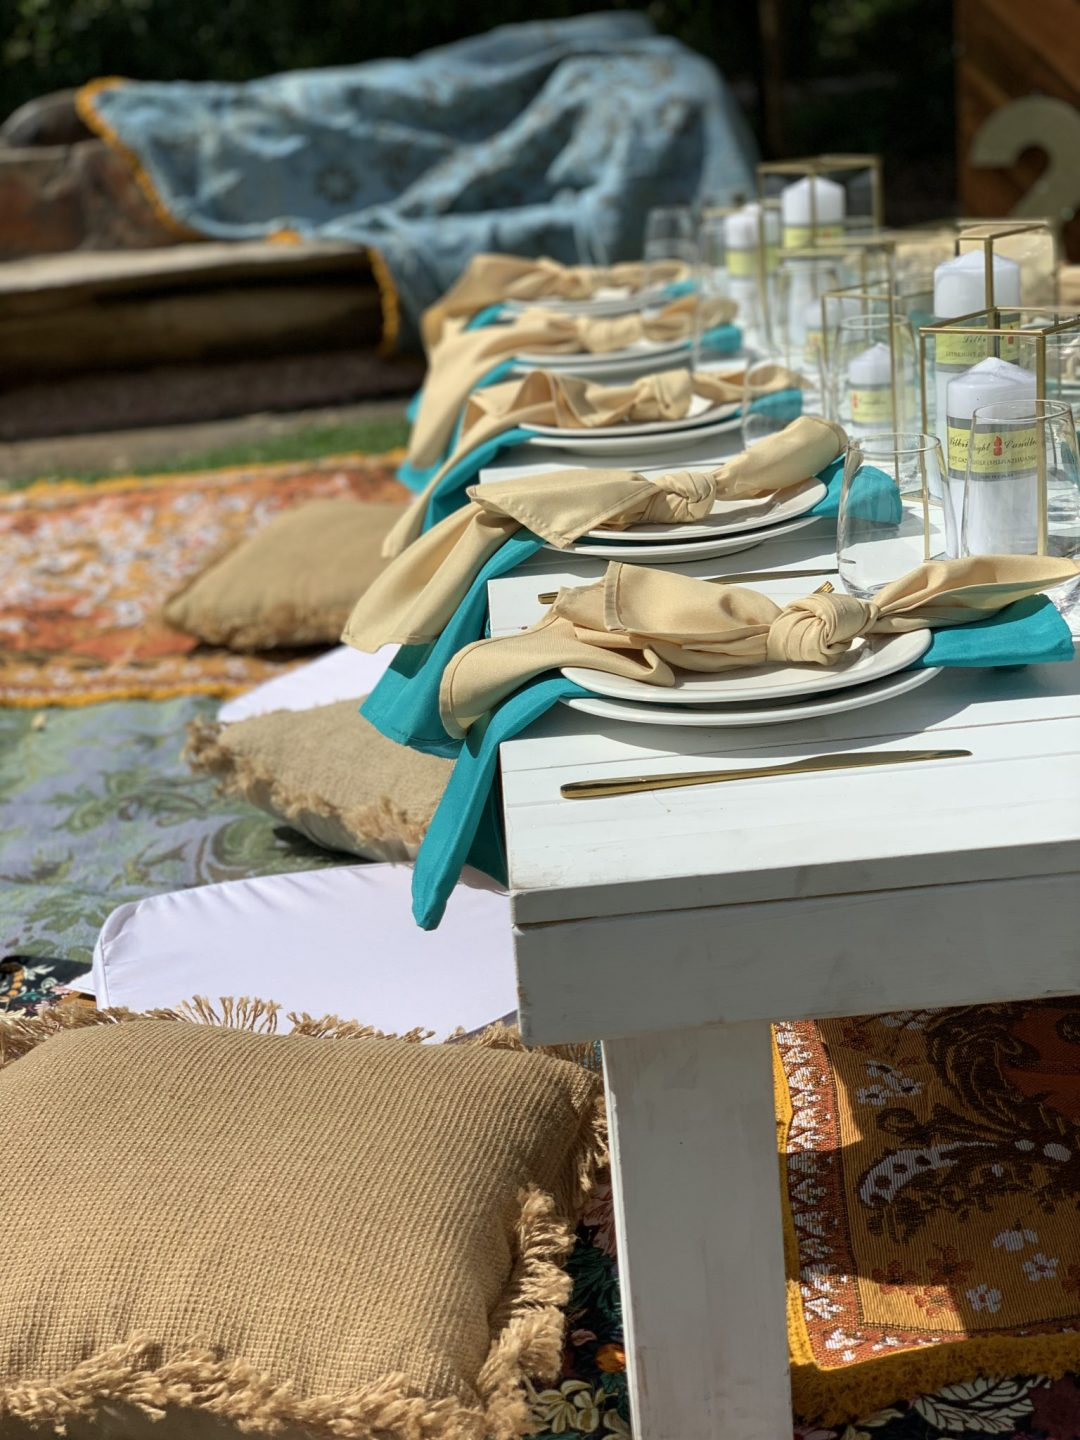 white-pallet-picnic-table-glass-candle-boxes-with-champagne-and-turquoise-linen-napkins-AFC-crockery-and-standard-glassware-assorted-cushions-and-wandering-folk-rugs